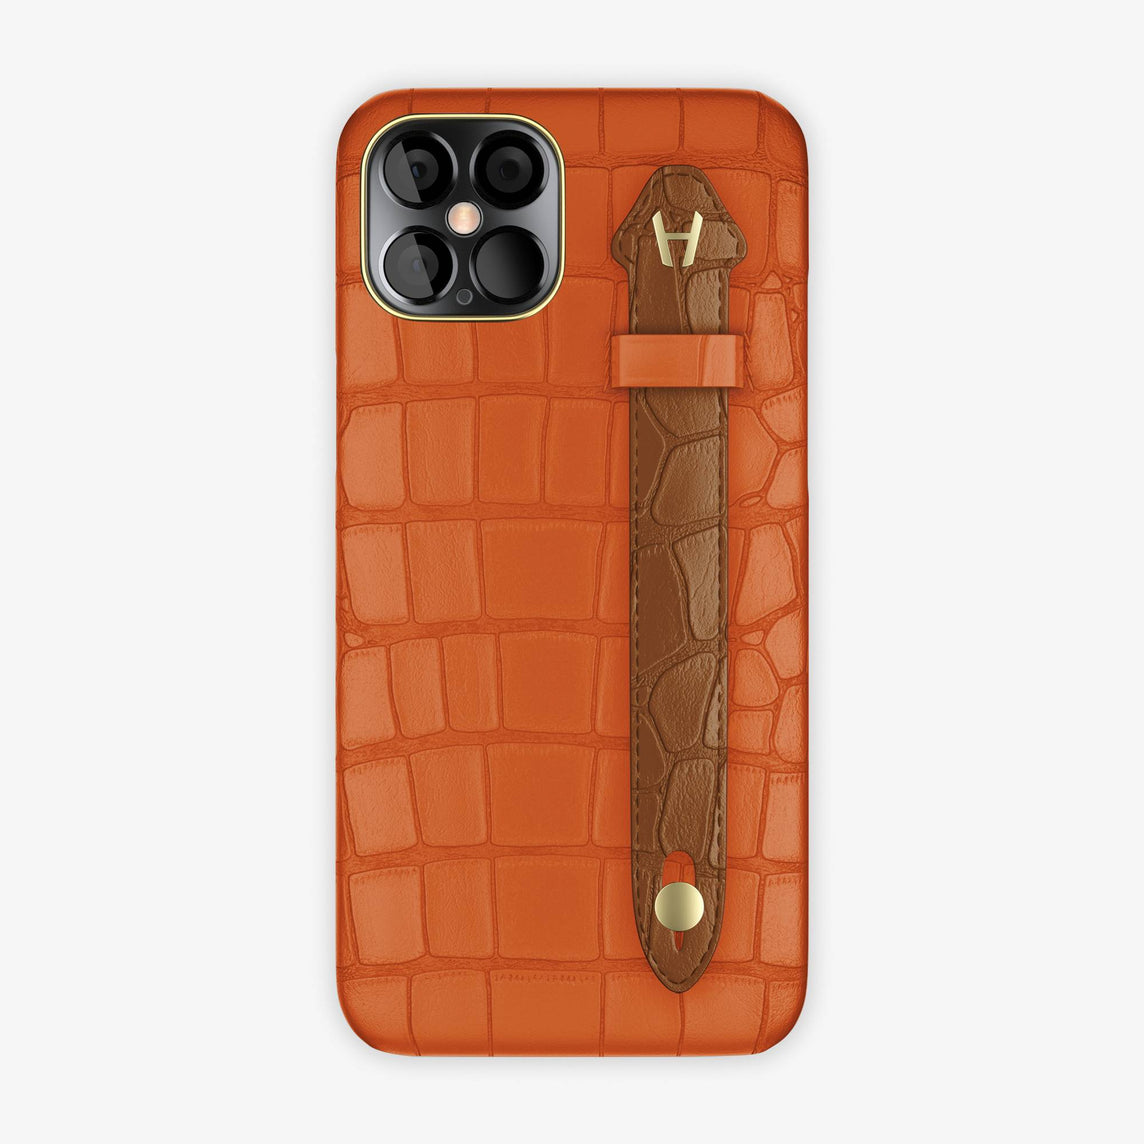 Alligator Side Finger Case iPhone 12 Pro Max | Orange Sunset/Cognac - Yellow-Gold